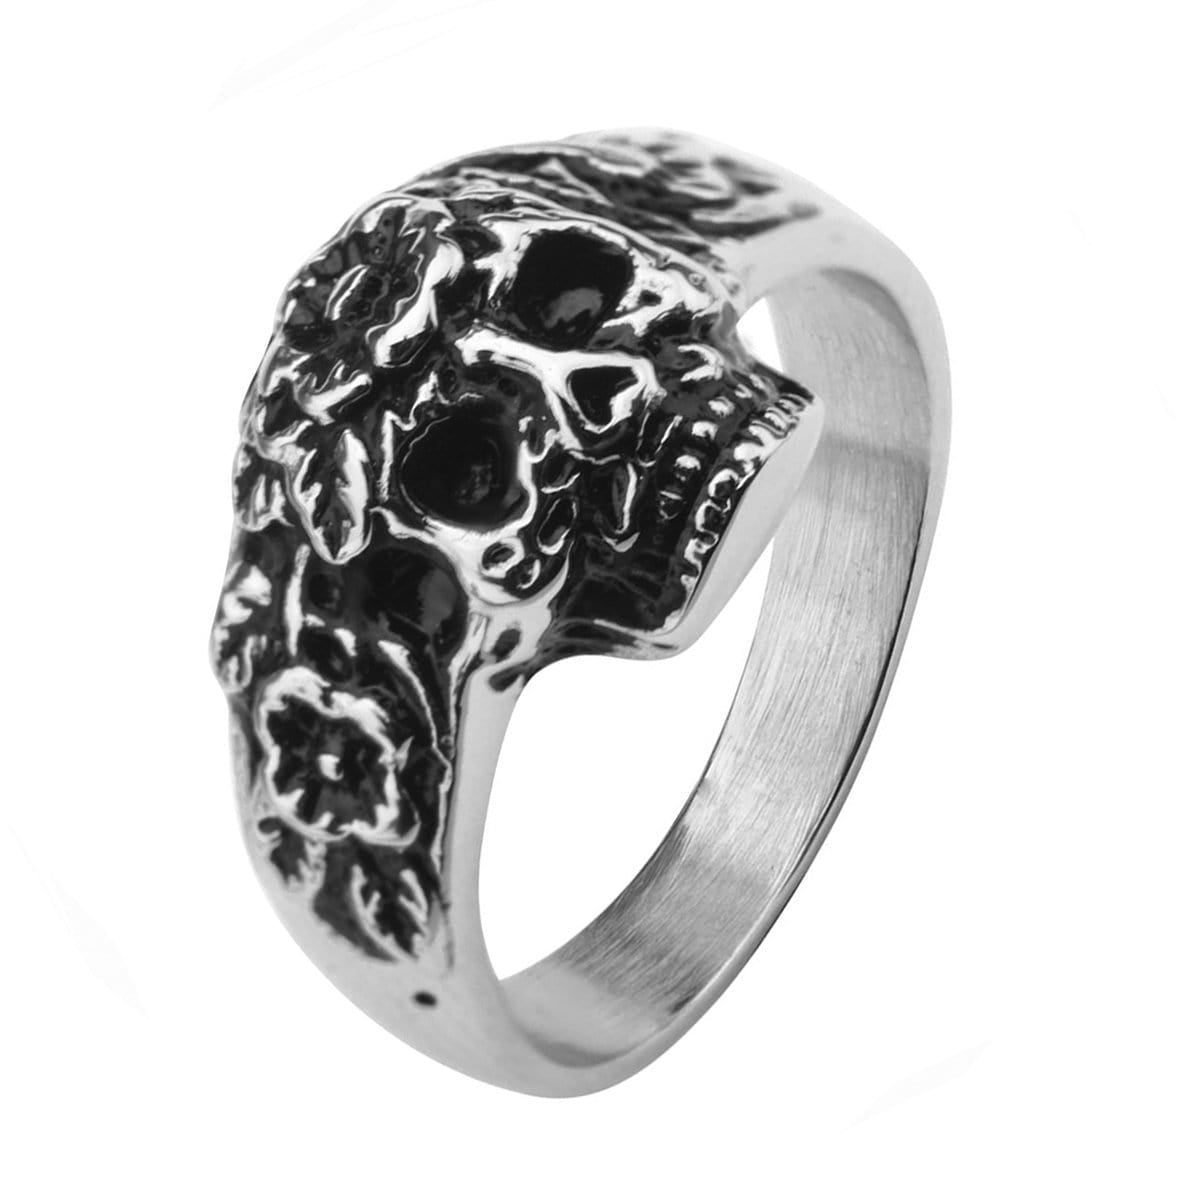 Stainless Steel Skull With Flowers Ring